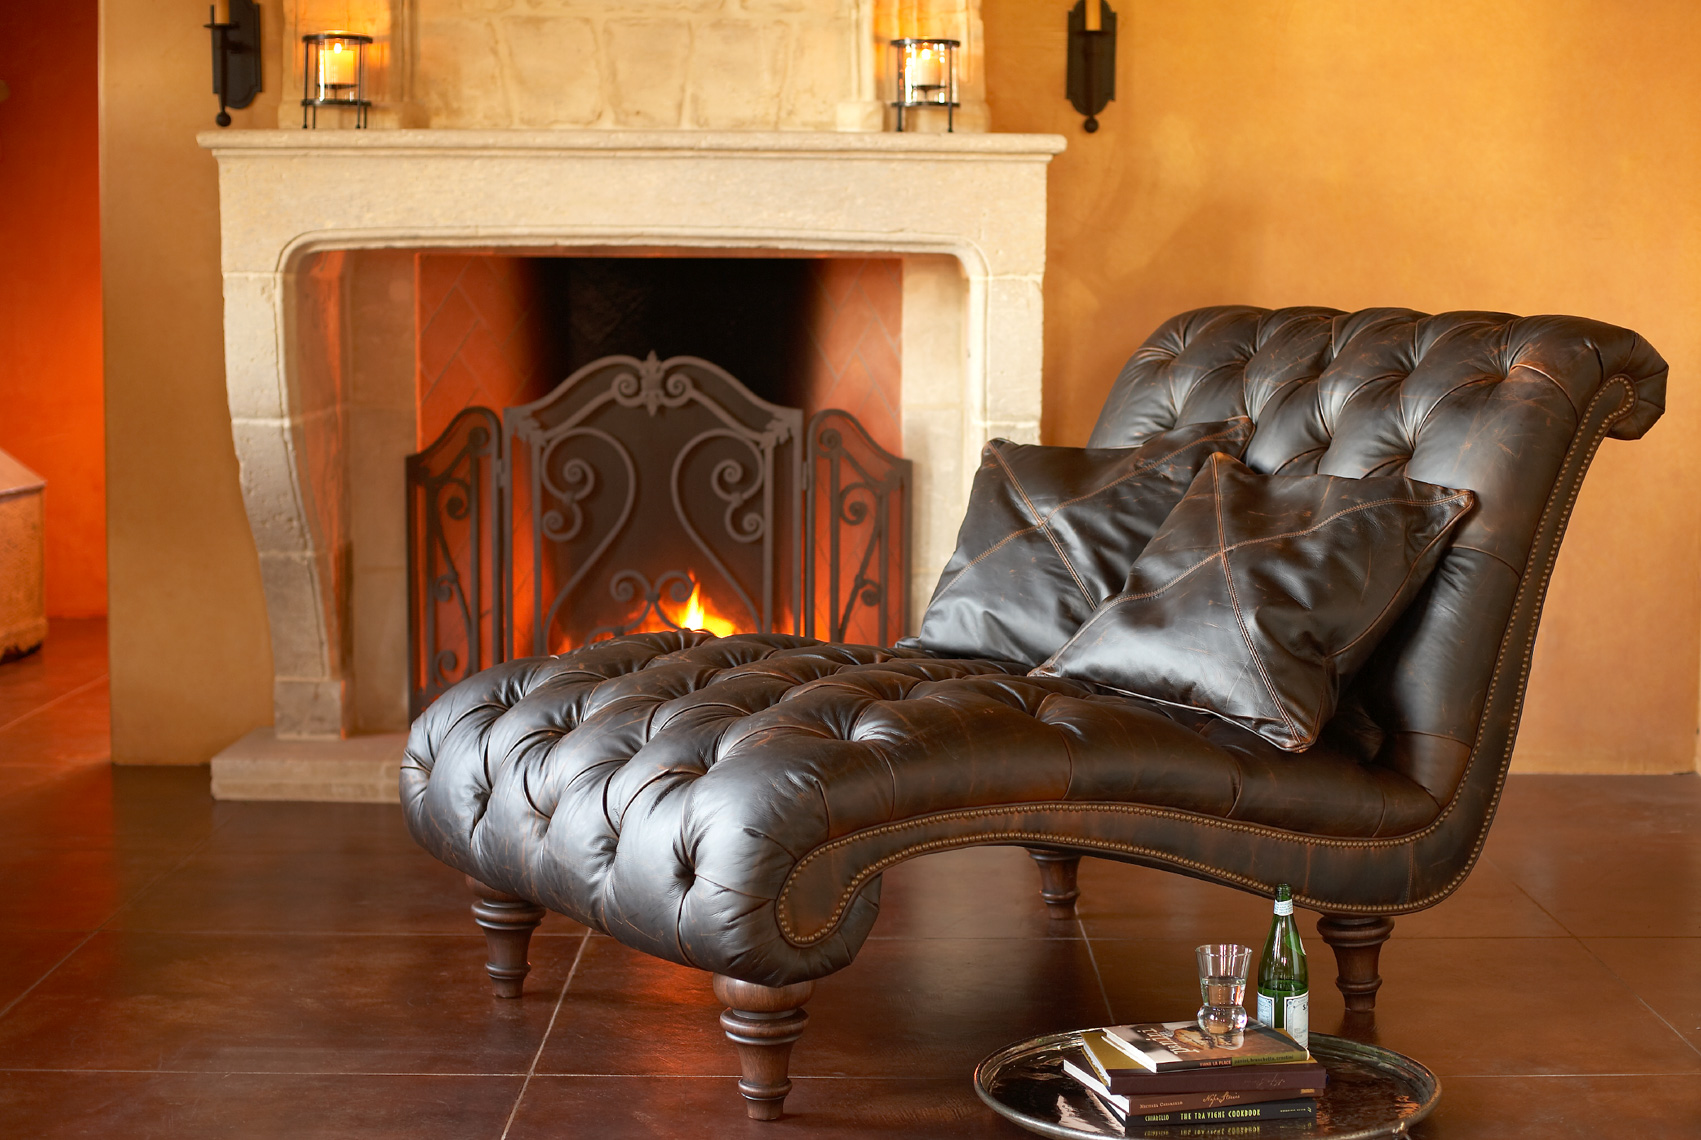 living room interior with brown leather chaise lounge sofa and white fireplace